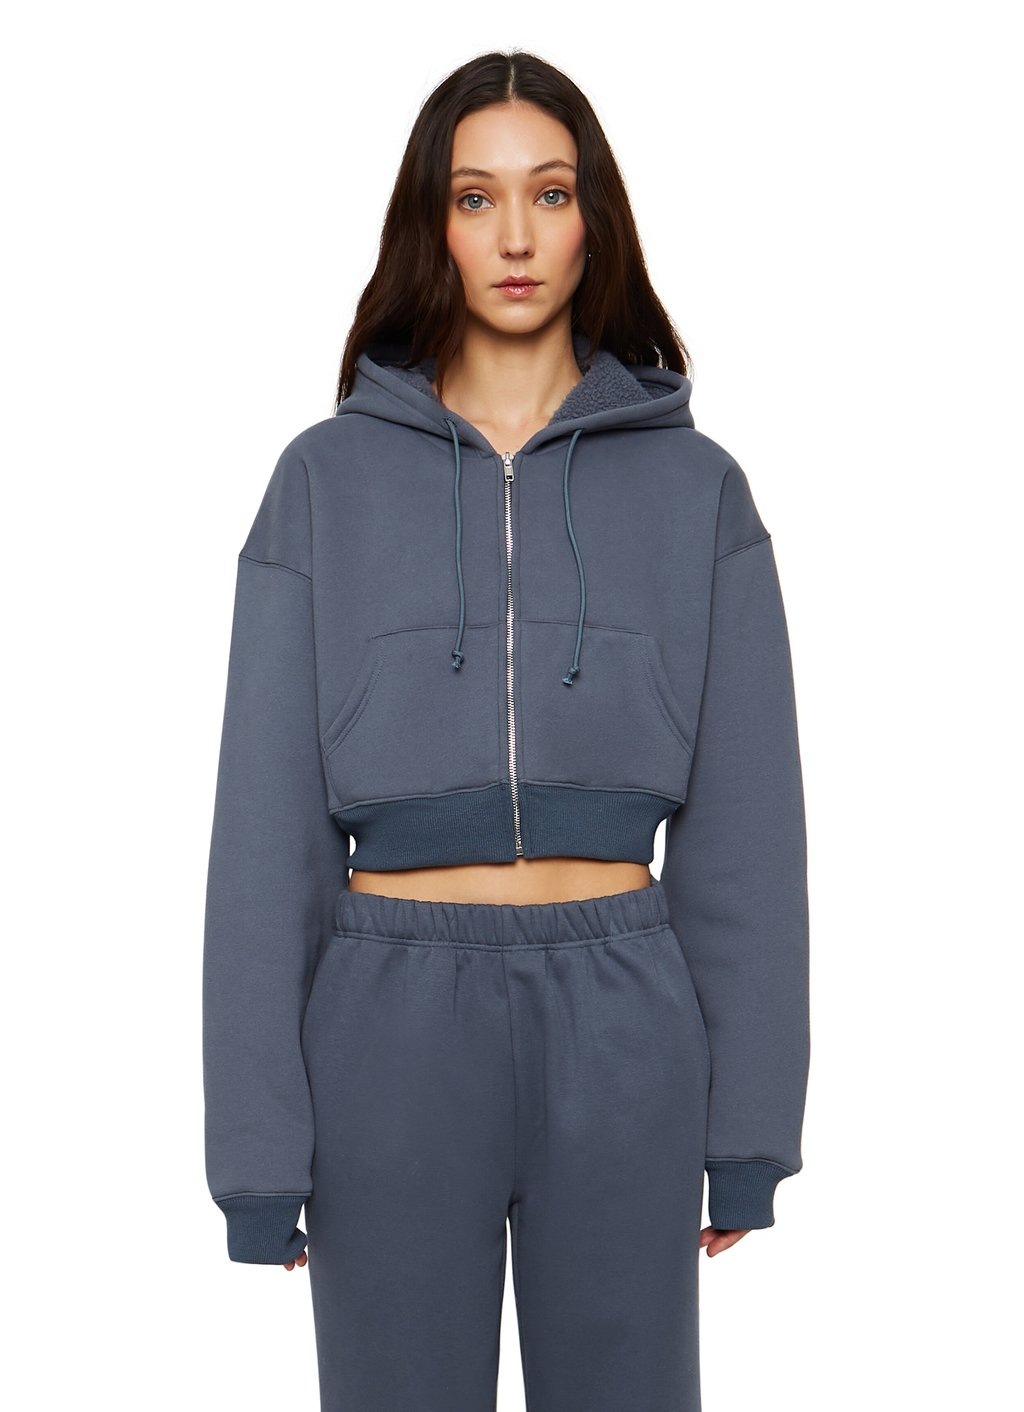 Cropped Zip-up Hoodie by Danielle Guizio, available on danielleguiziony.com for $178 Bella Hadid Top Exact Product